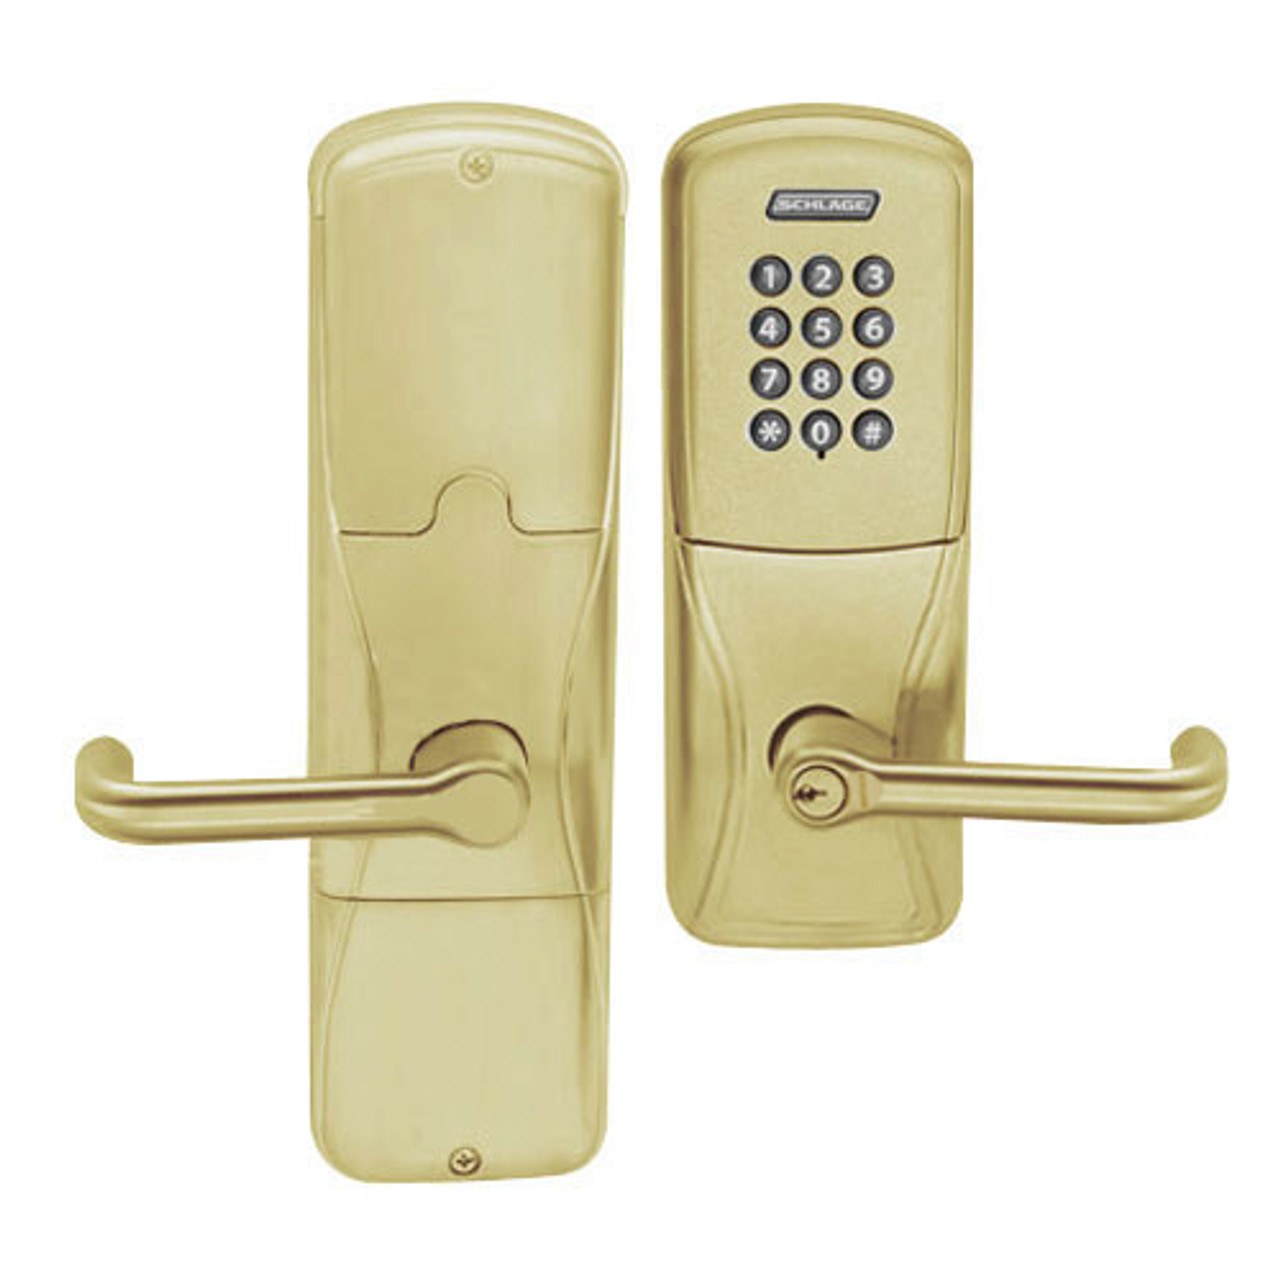 AD200-CY-40-KP-TLR-GD-29R-606 Schlage Privacy Cylindrical Keypad Lock with Tubular Lever in Satin Brass